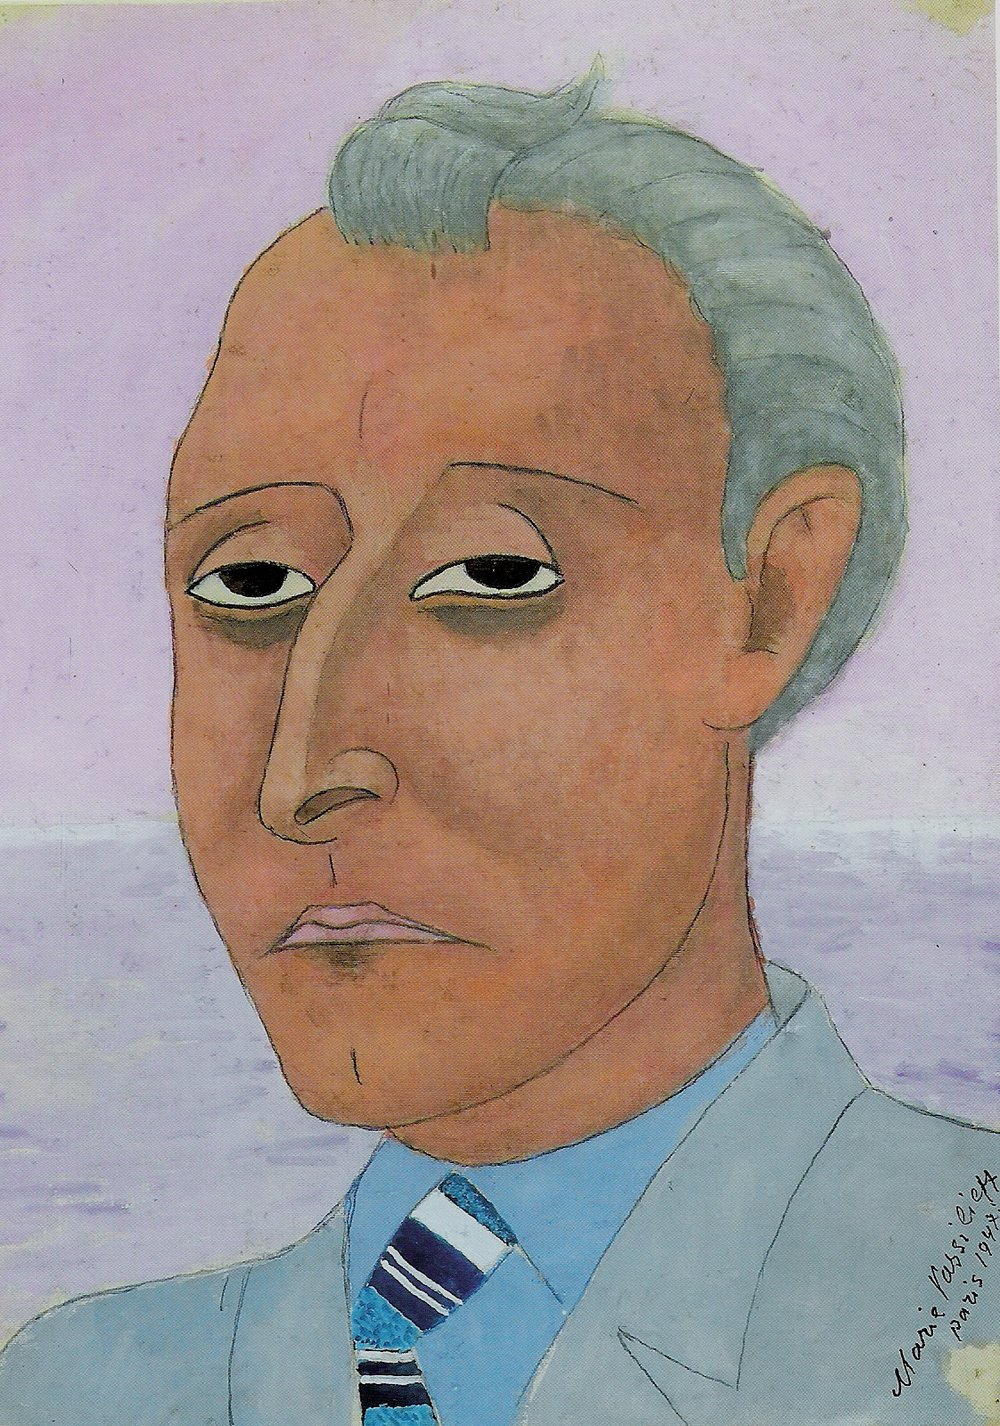 Portrait of a Man.  Tempera on silk. size: 32 x 24 cm., signed and dated 1947.